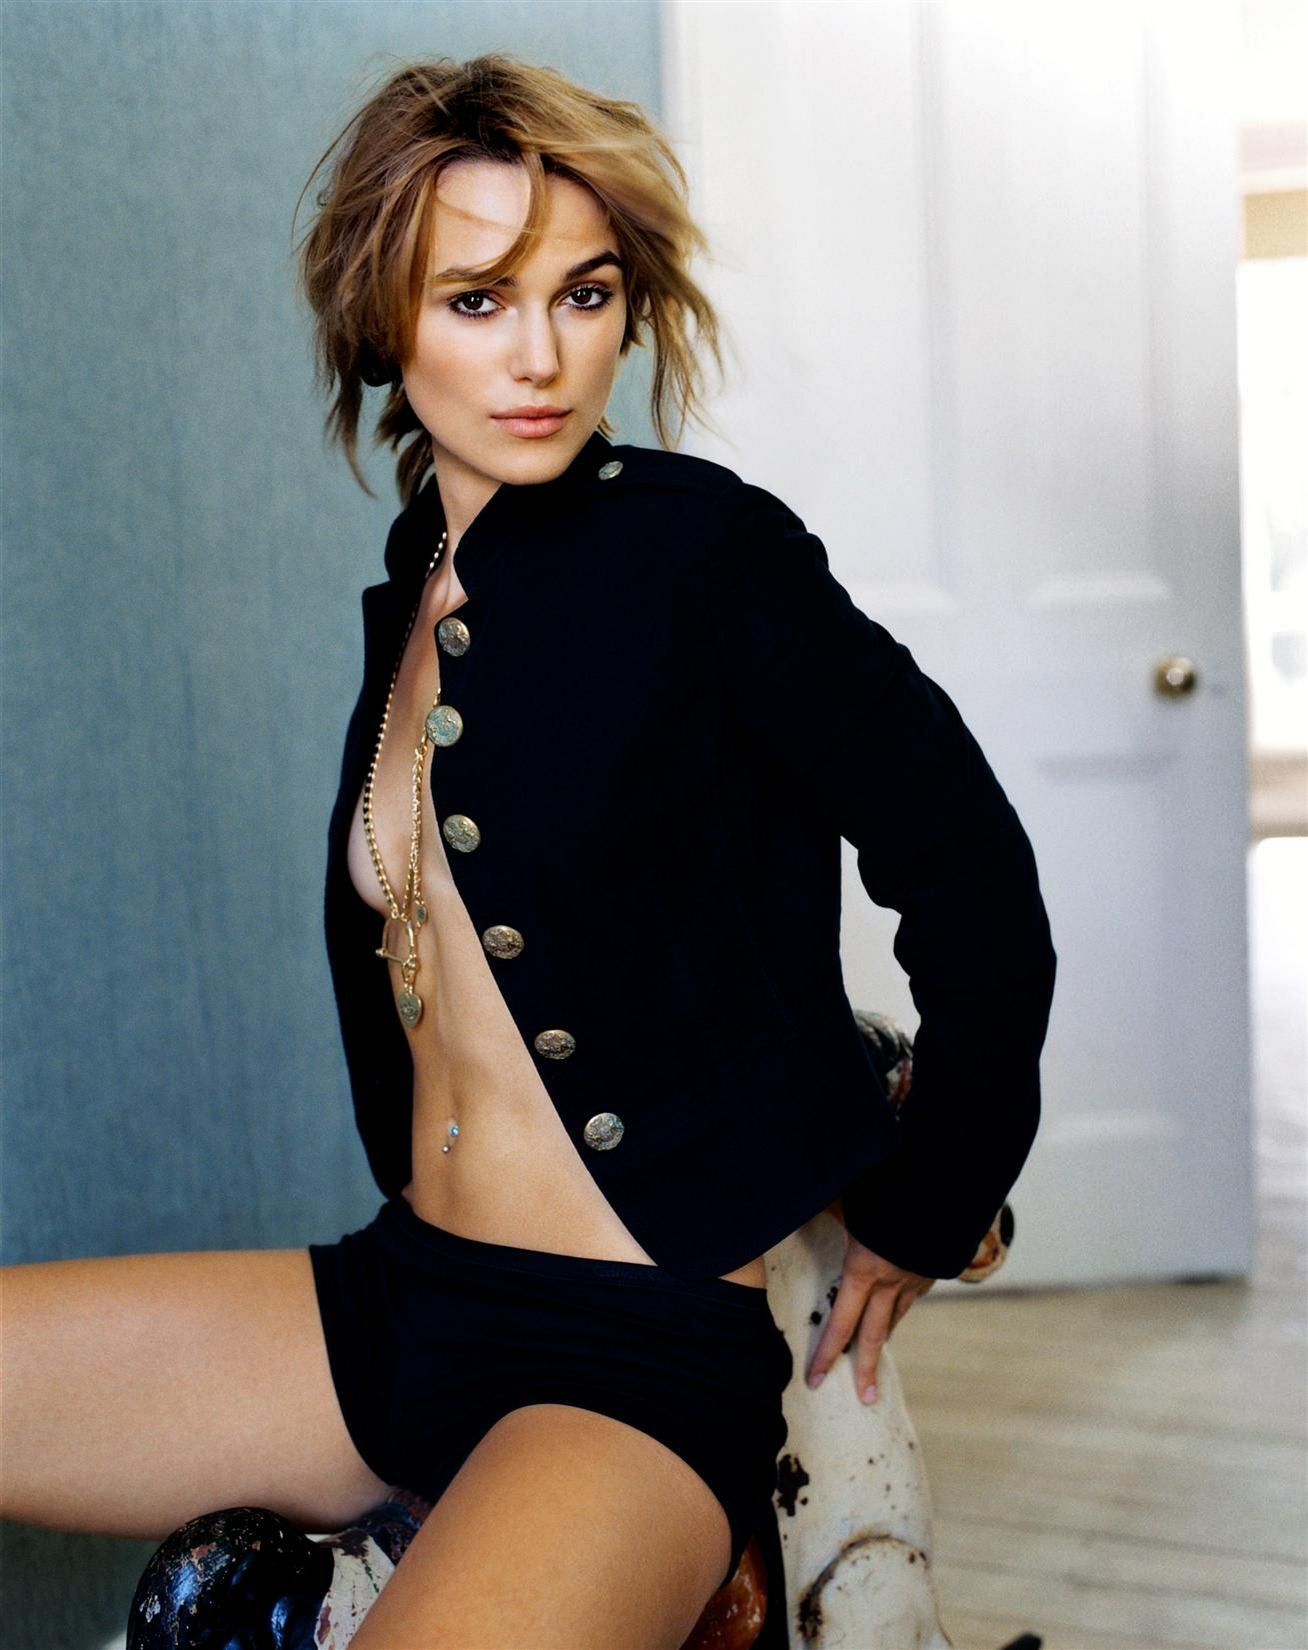 Congratulate, keira knightley photo shoot